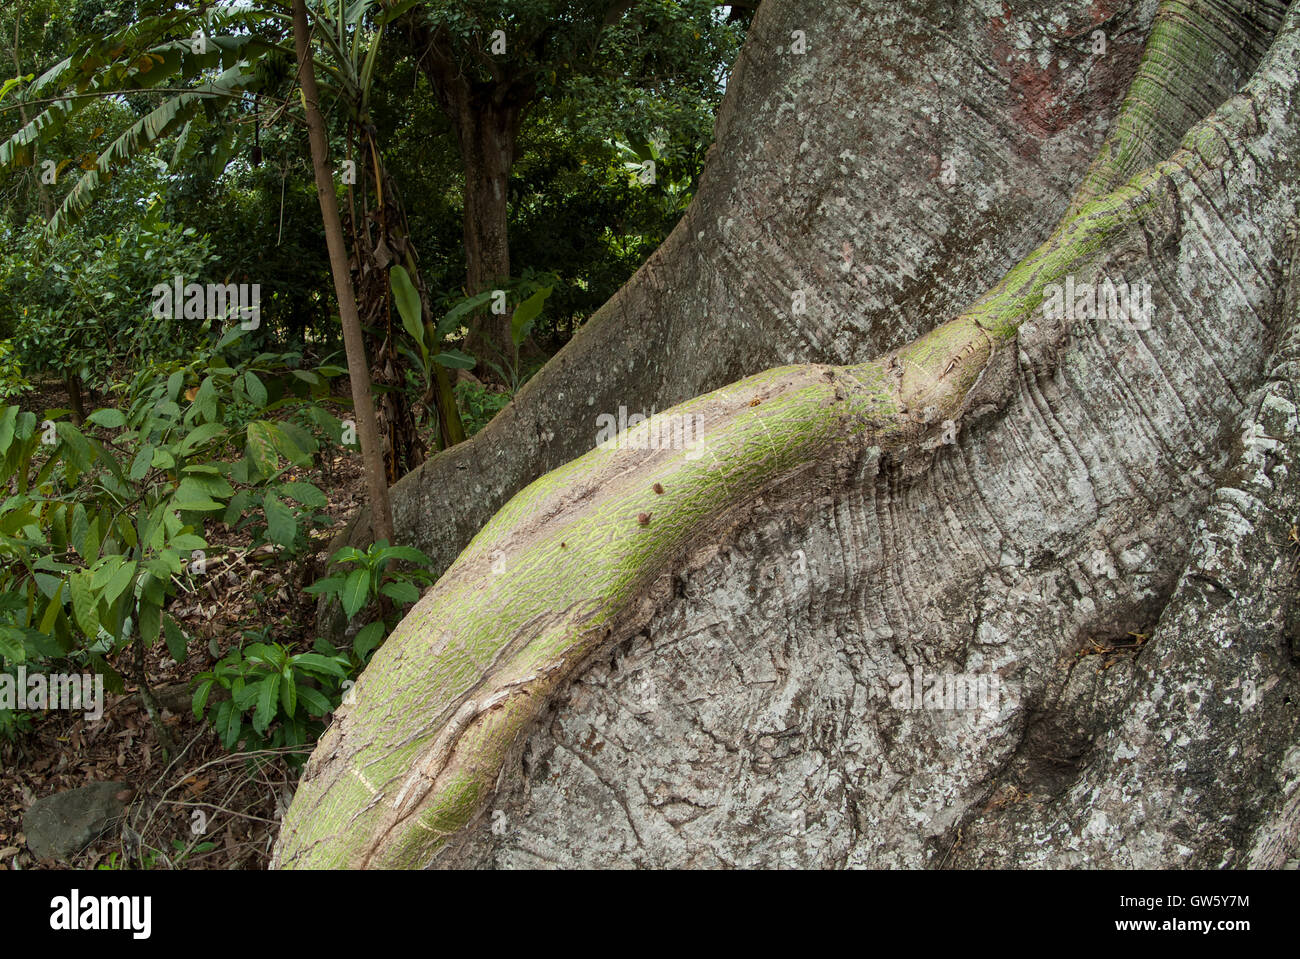 Tree with strong roots. Close-up. São Tomé e Príncipe - Stock Image